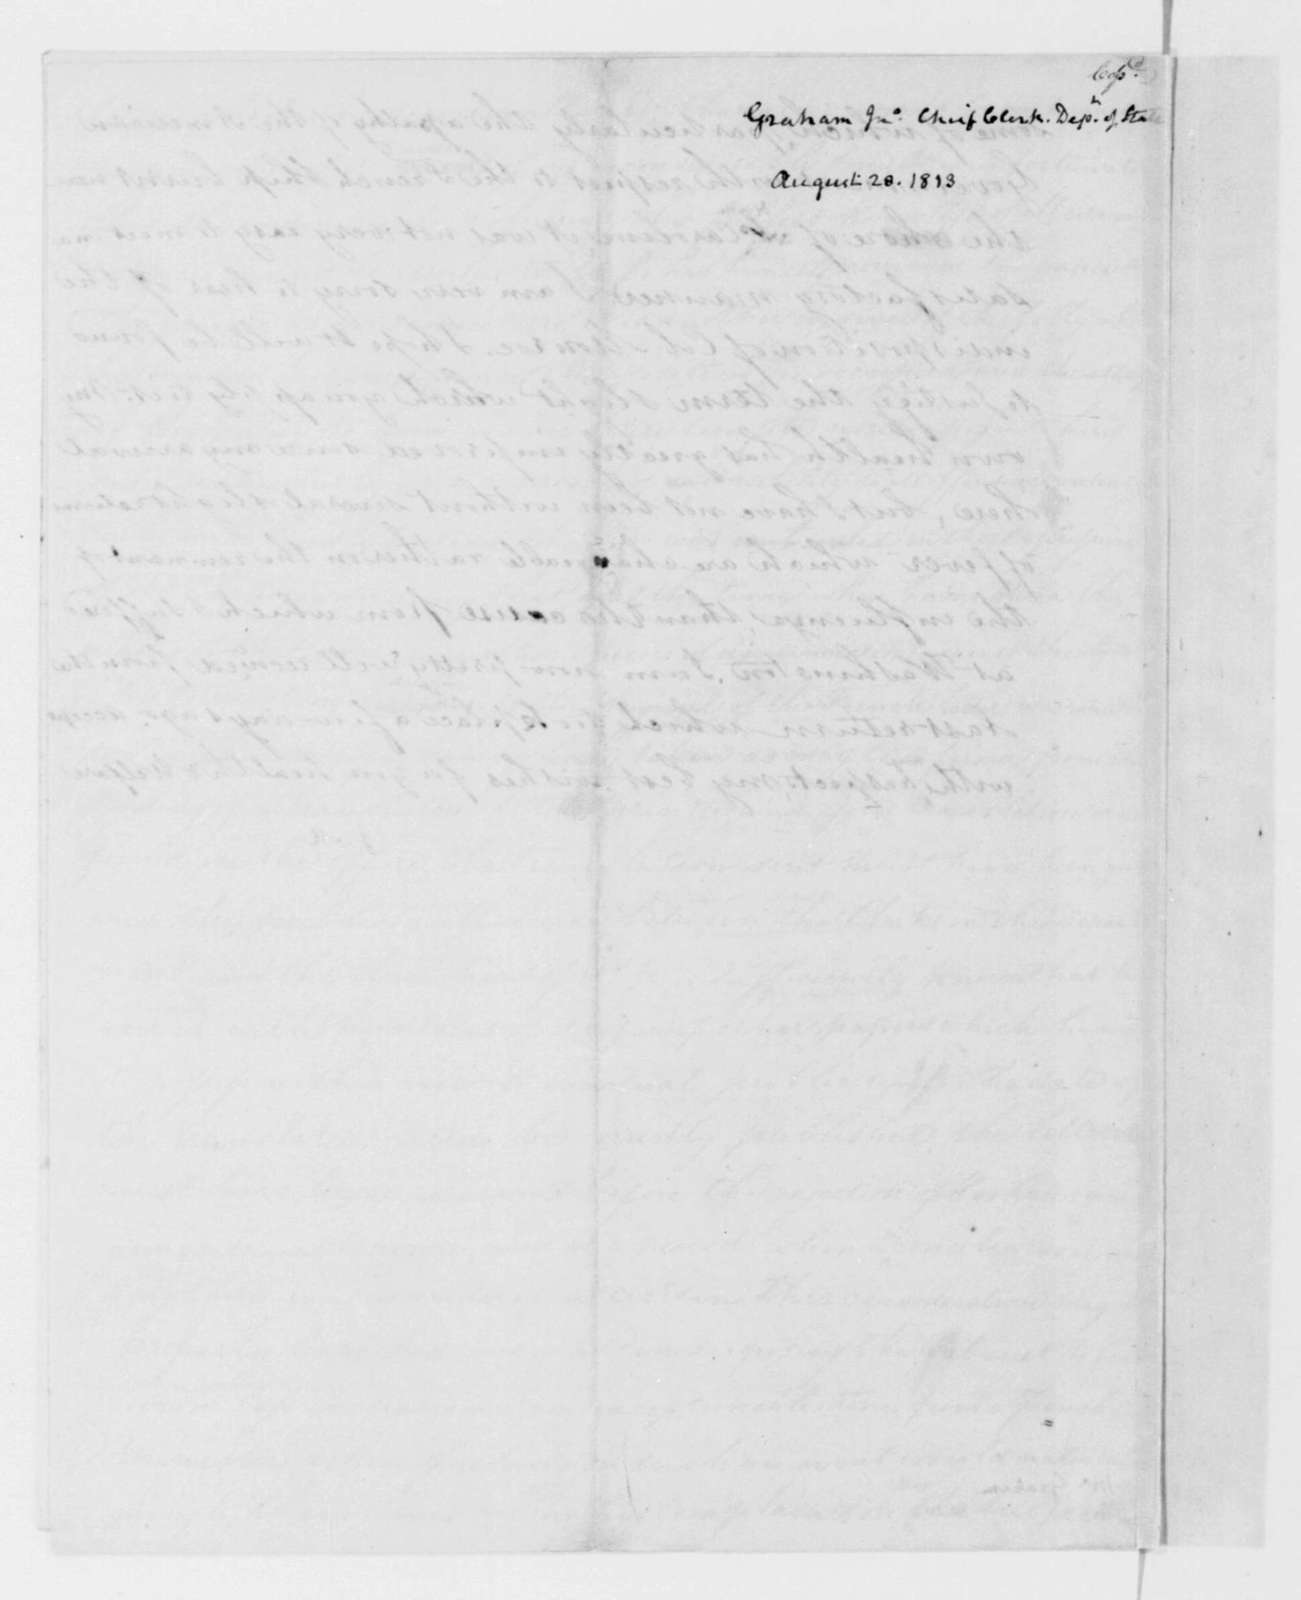 James Madison to John Graham, August 28, 1813. With Copy.